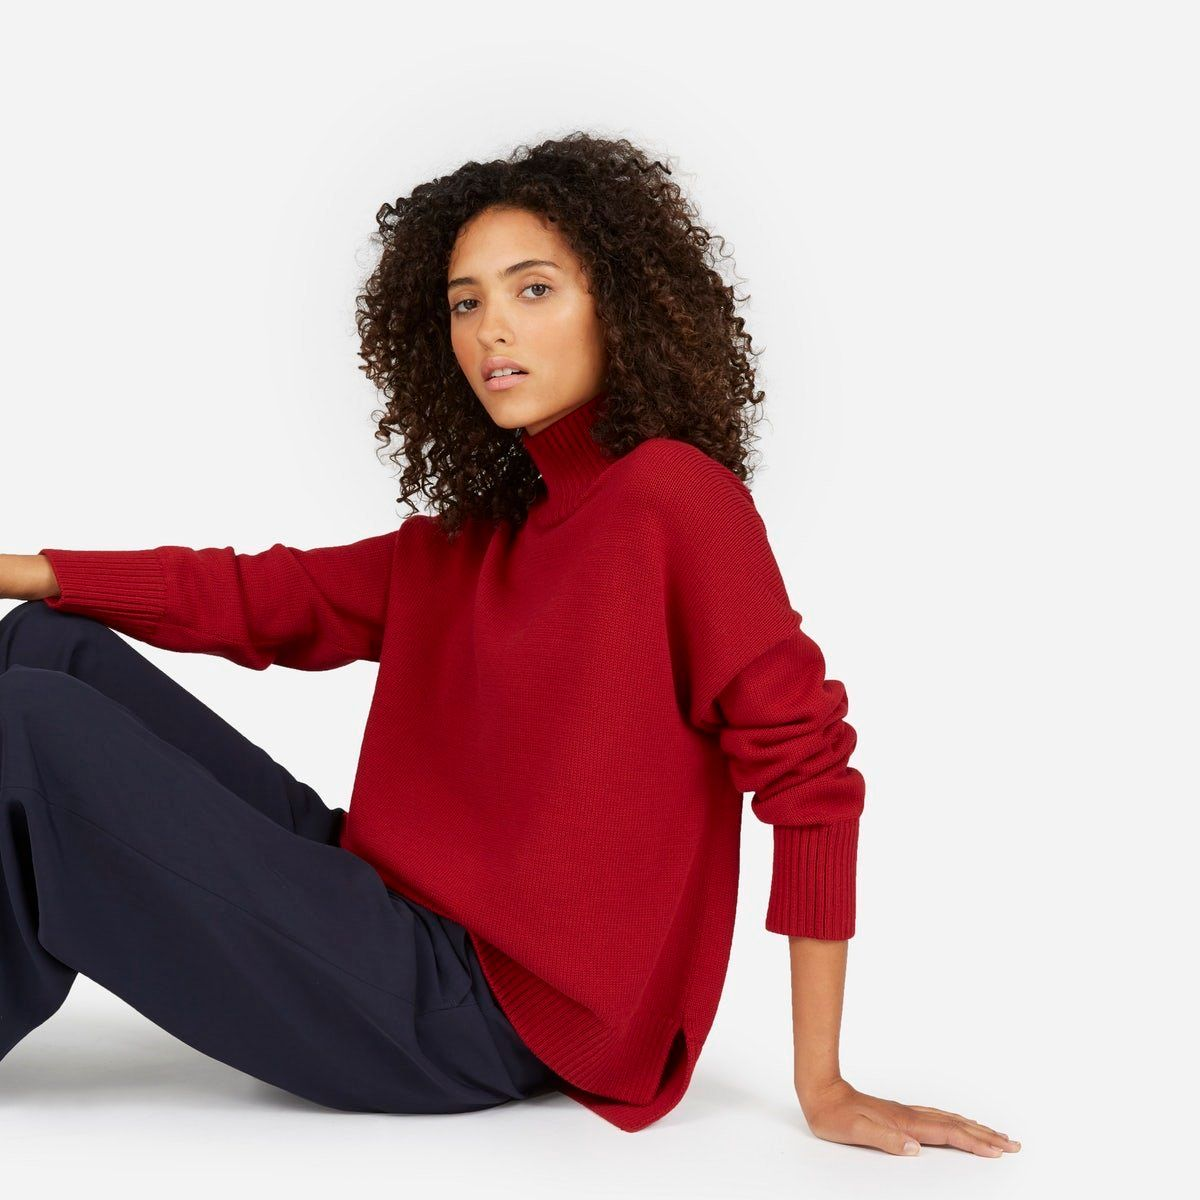 Everlane is known for not compromising its style when it comes to comfort and durability. Their minimalist style allows you t